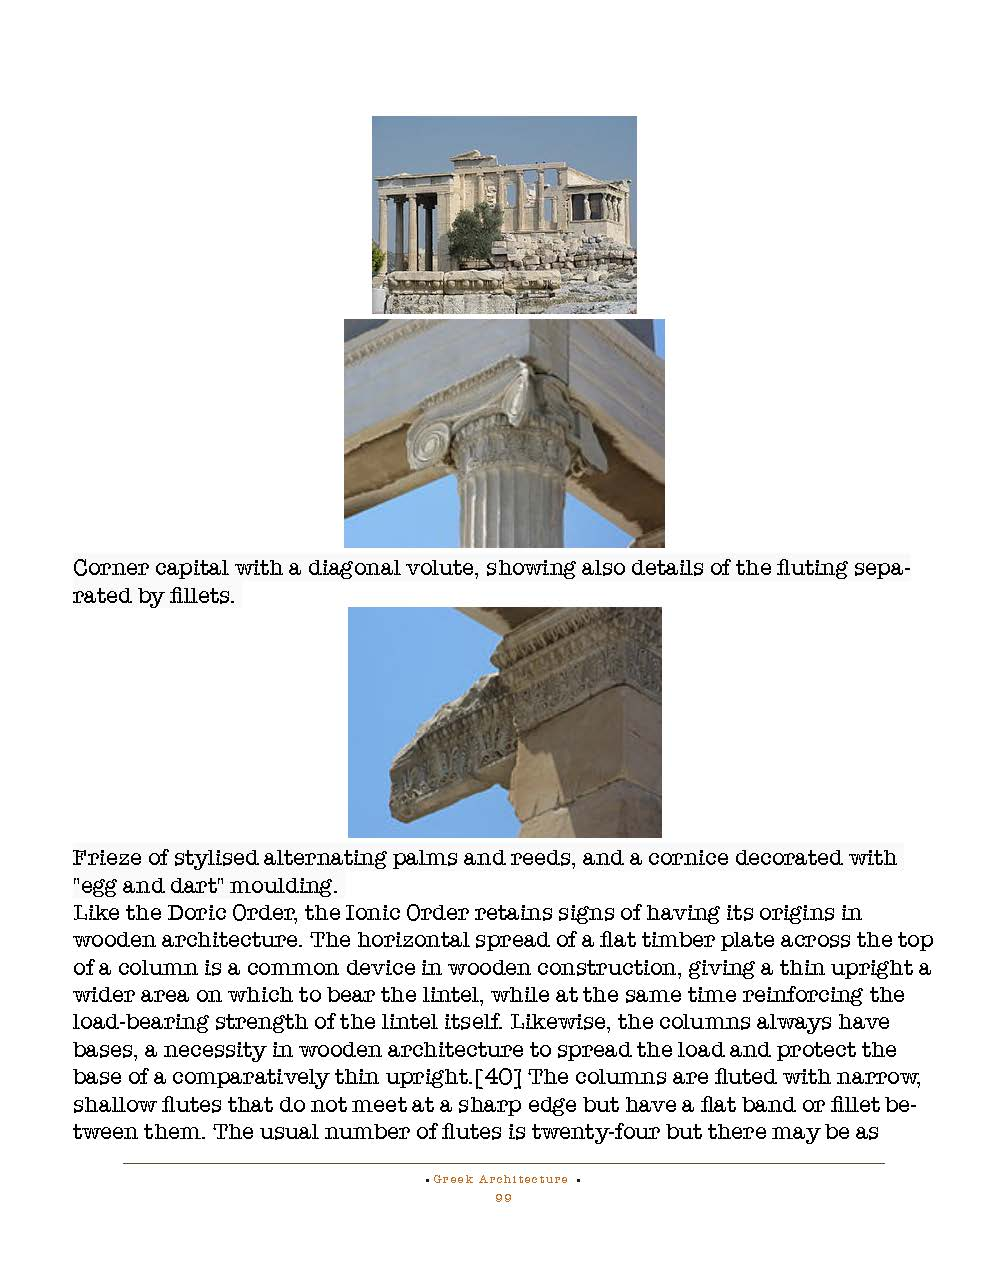 HOCE- Ancient Greece Notes_Page_099.jpg